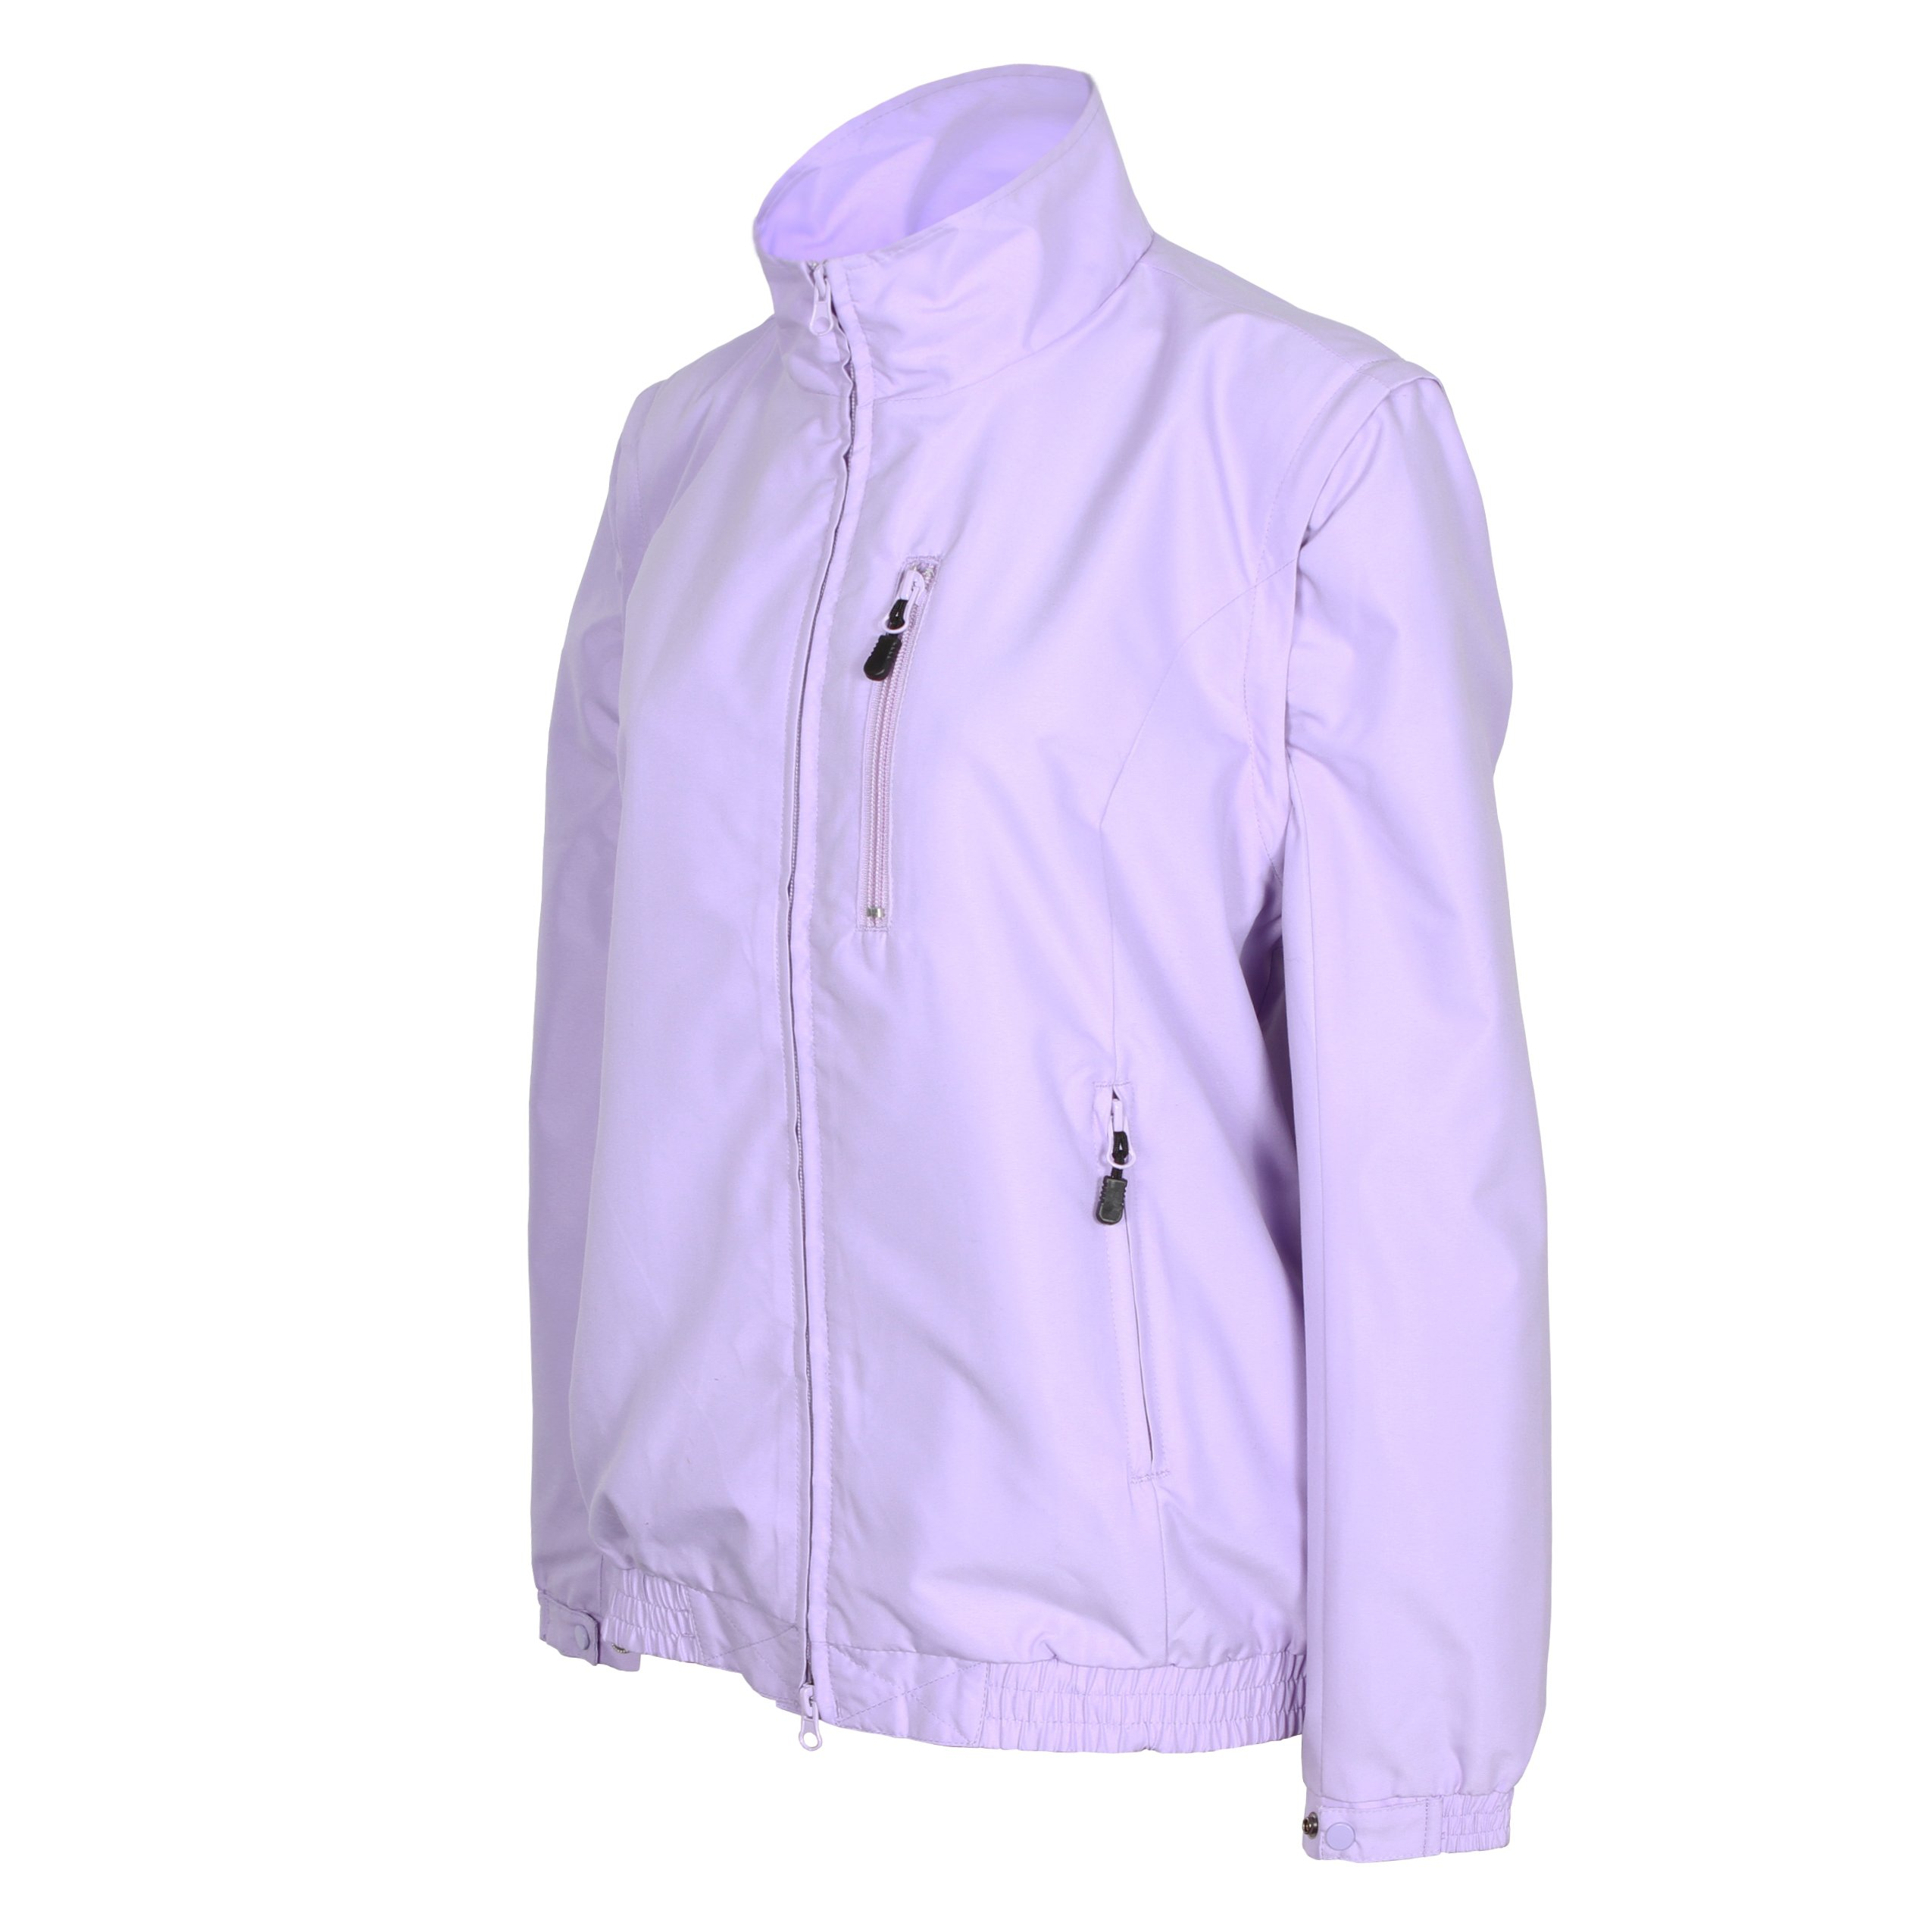 Tres Bien Golf Women's 2 in 1 Convertible Jacket / Vest (Medium, Lilac) by Tres Bien Golf (Image #3)